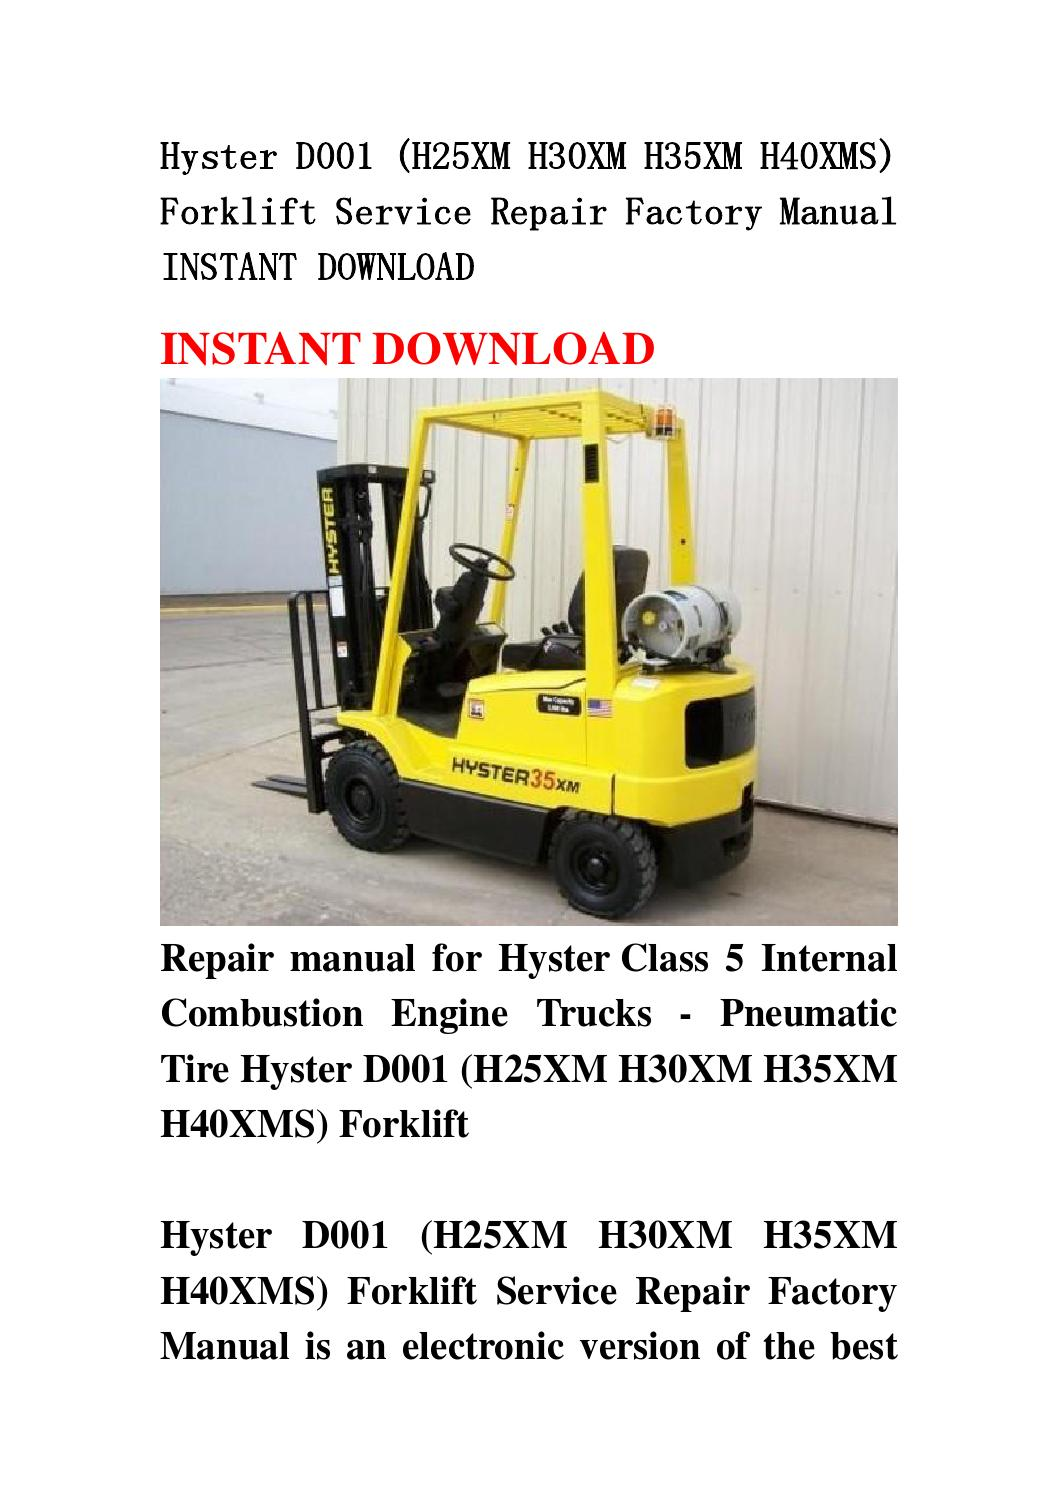 Hyster manual Download